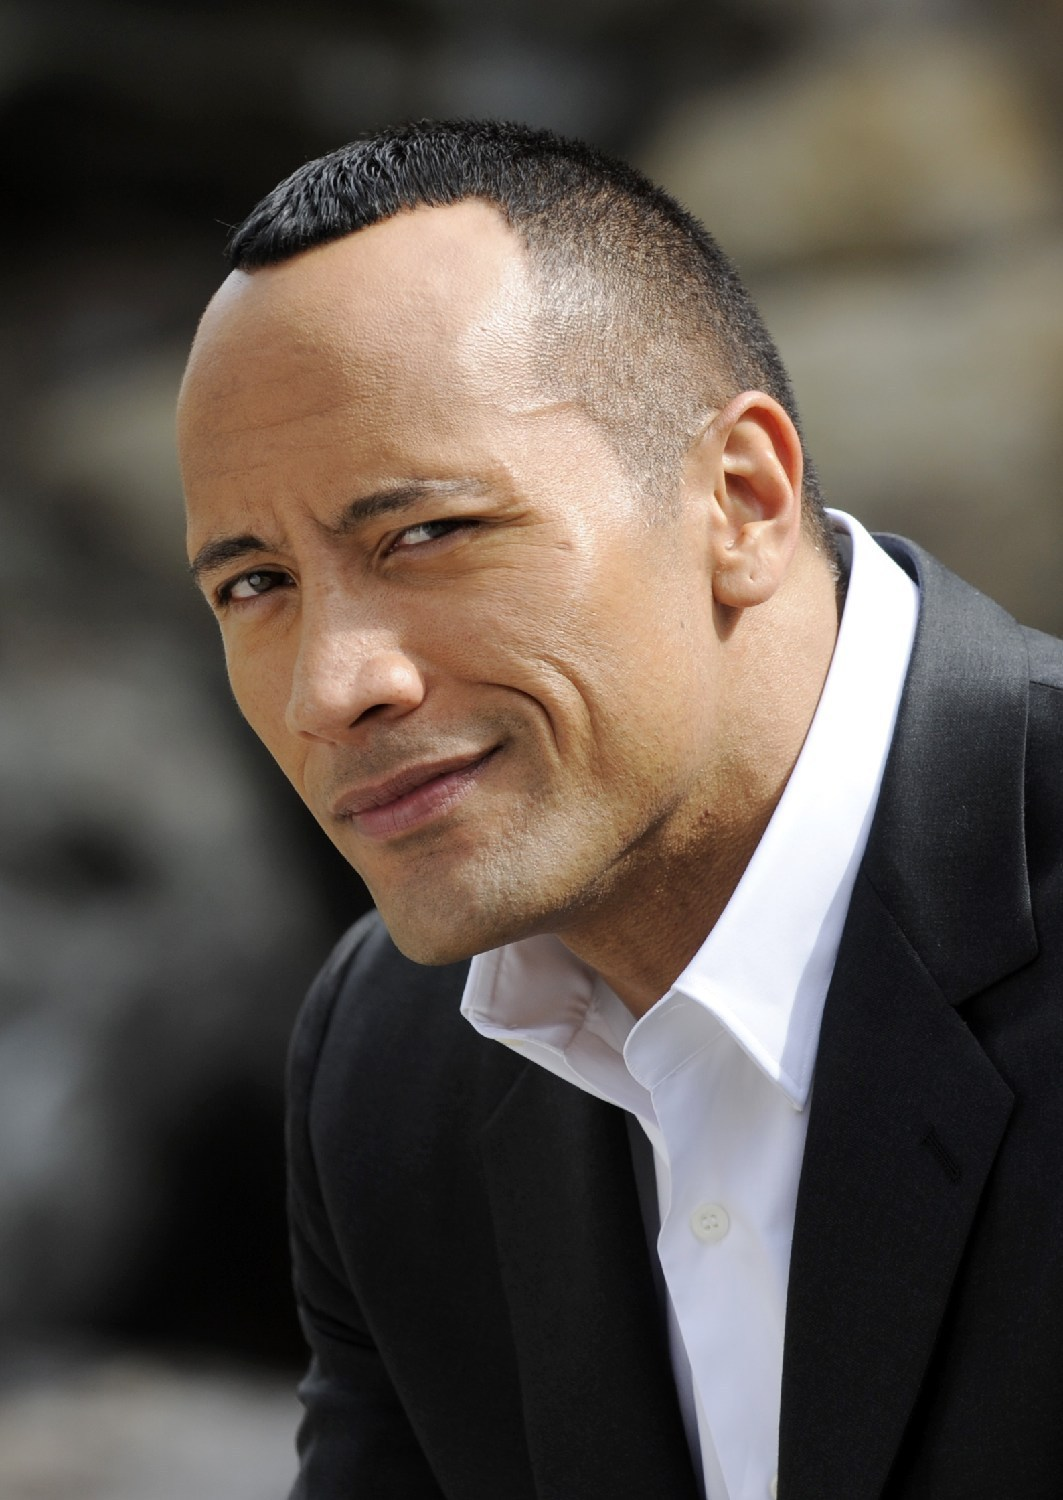 dwayne johnson - photo #30